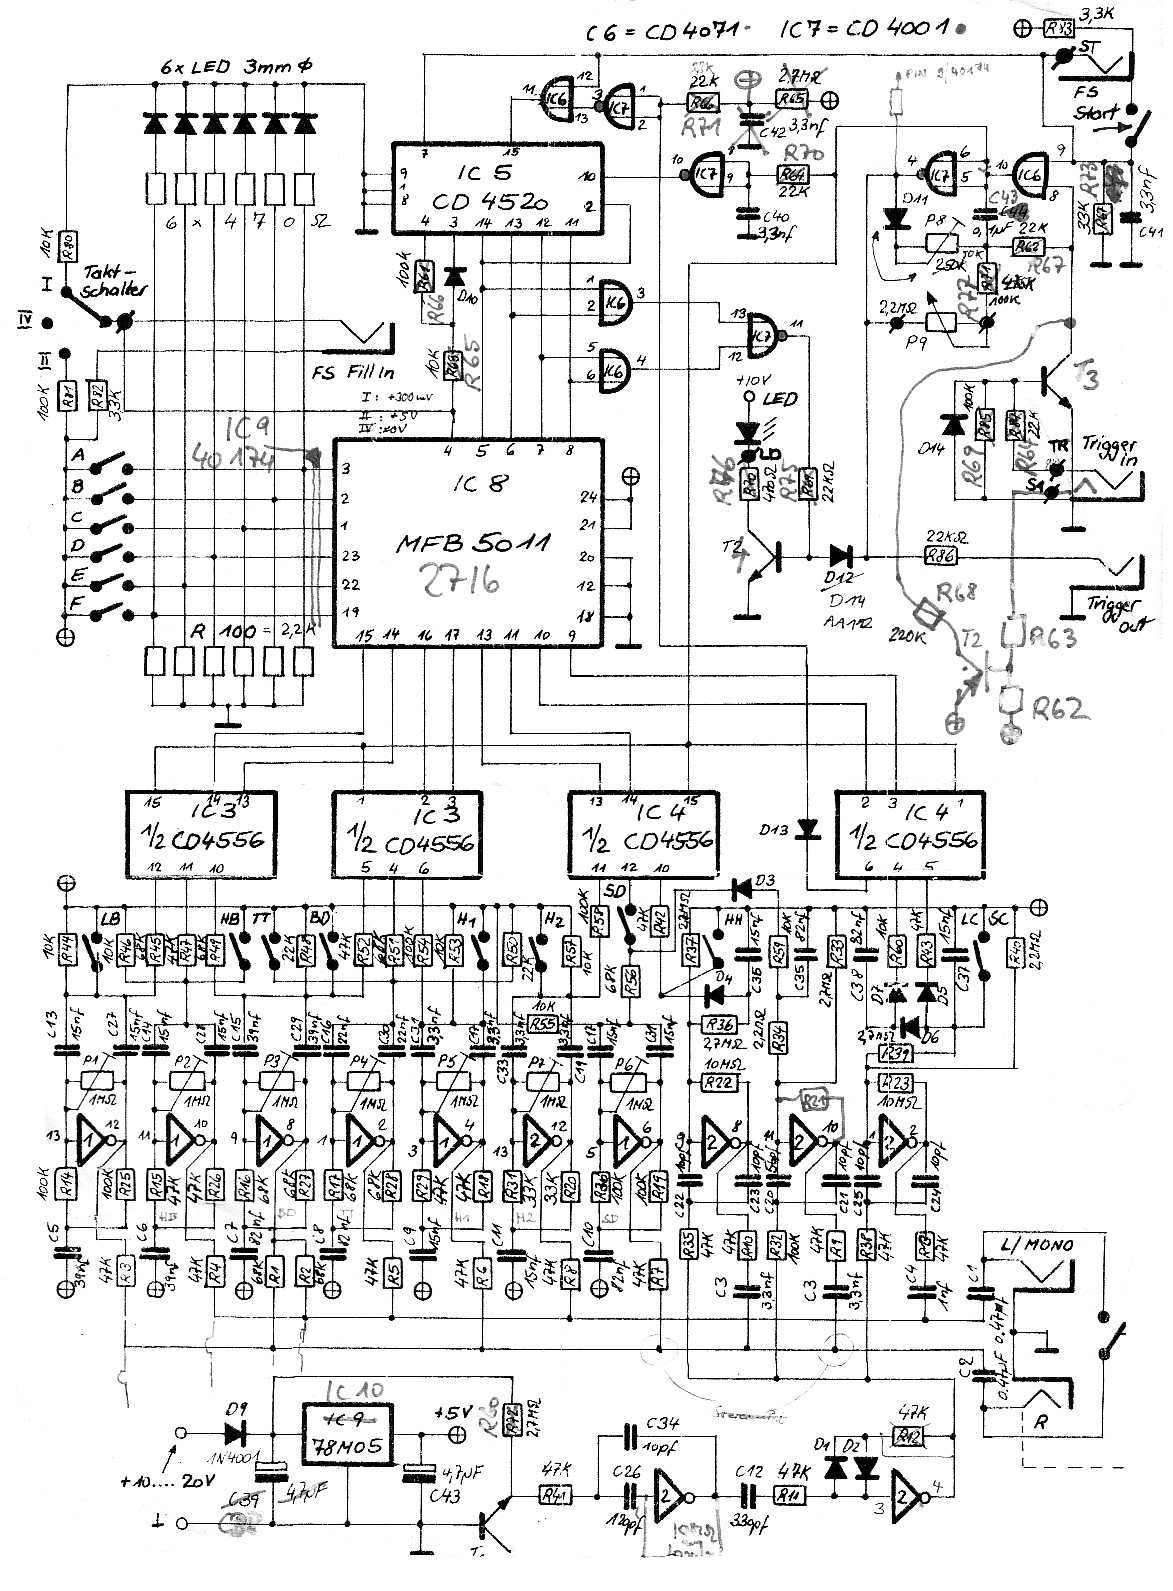 Casio Keyboard Schematic Also Electronic Circuit Diagrams Diagram Likewise Toy Organ 555 Timer Synthesizer Service Manuals Free Download Rh Synfo Nl